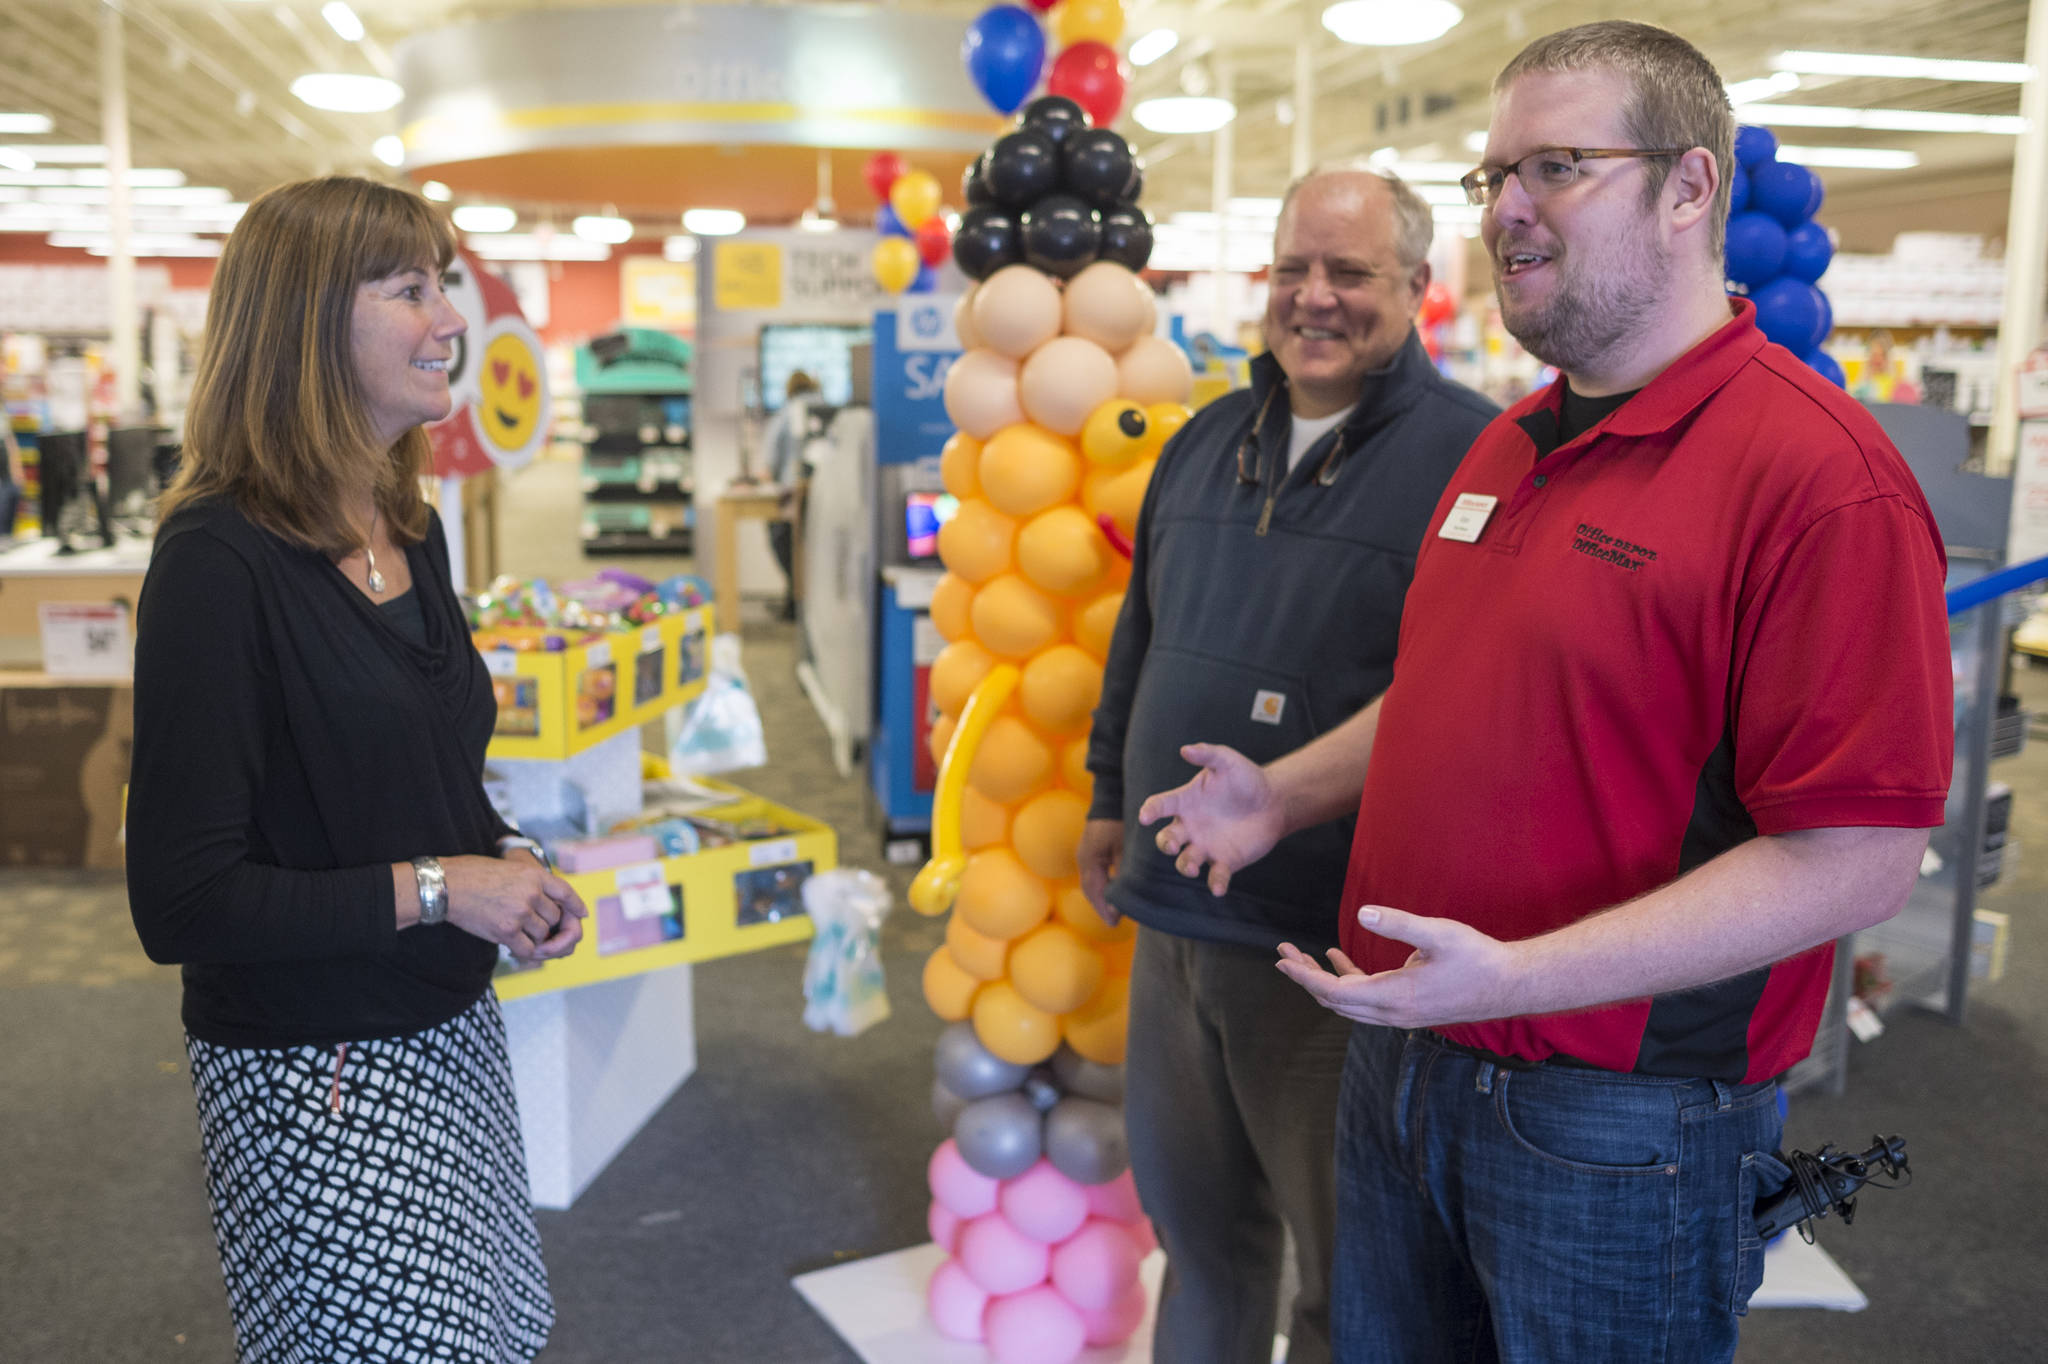 Dr. Bridget Weiss, Interim Juneau School District Superintendent, left, and Harborview Elementary School special education teacher Steve Byers, center, speak with Office Max store manager Adam Dordea on Thursday, August 16, 2018, during a store fundraising event for elemenary schools. Office Max pledged to donate up to $10,000. (Michael Penn | Juneau Empire)